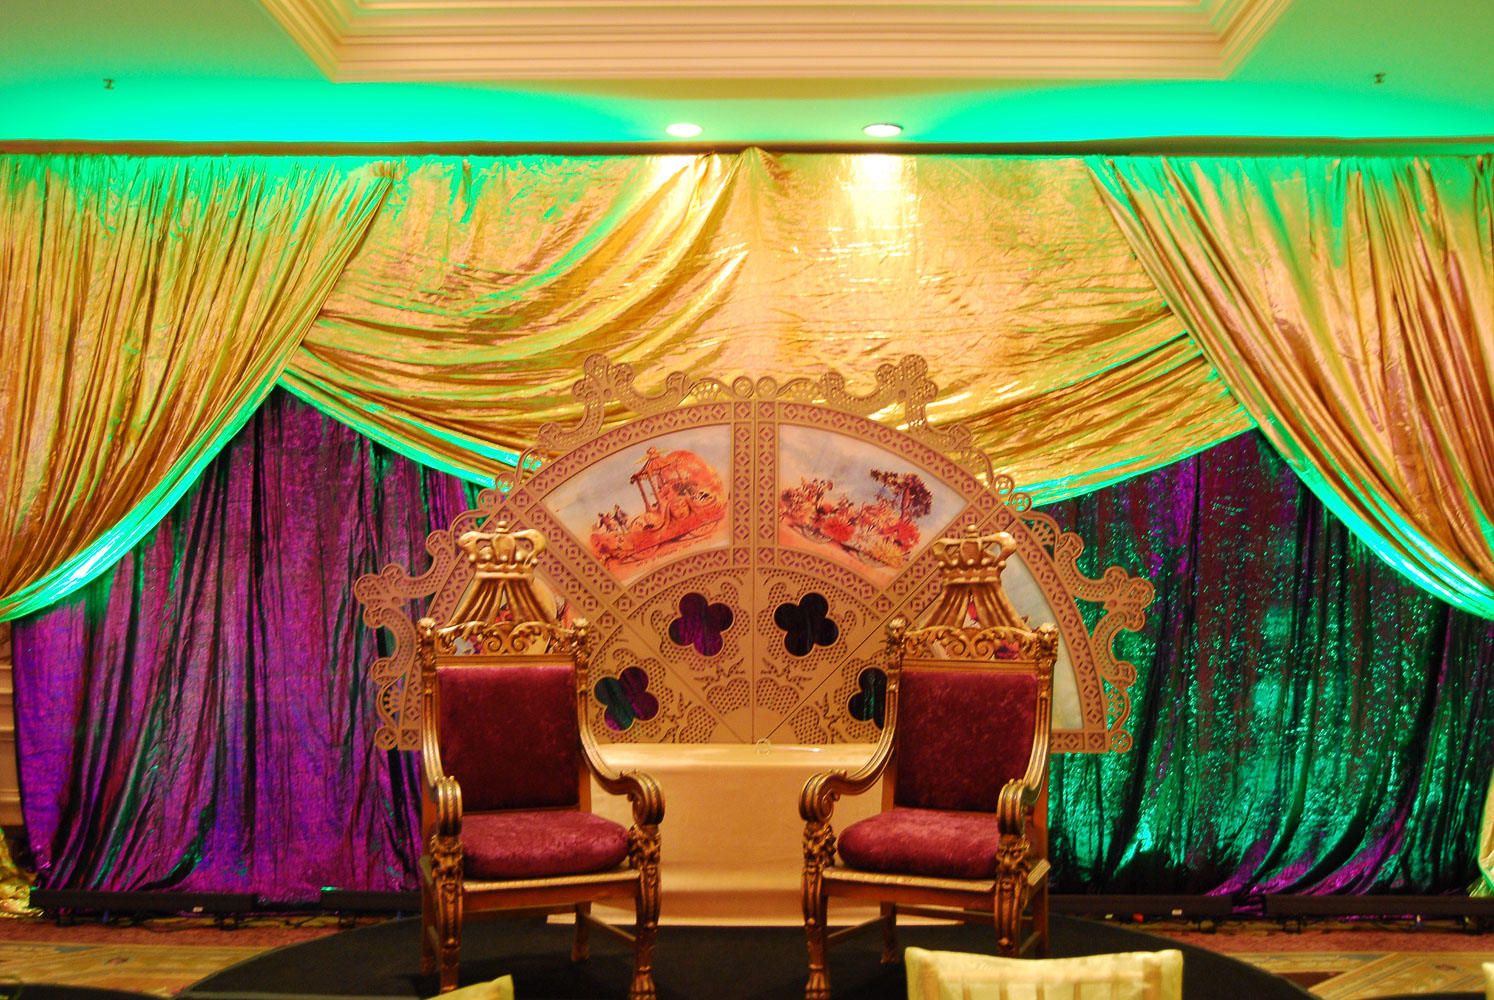 Mardi gras ball decor bbc destination management for Decoration accessoire